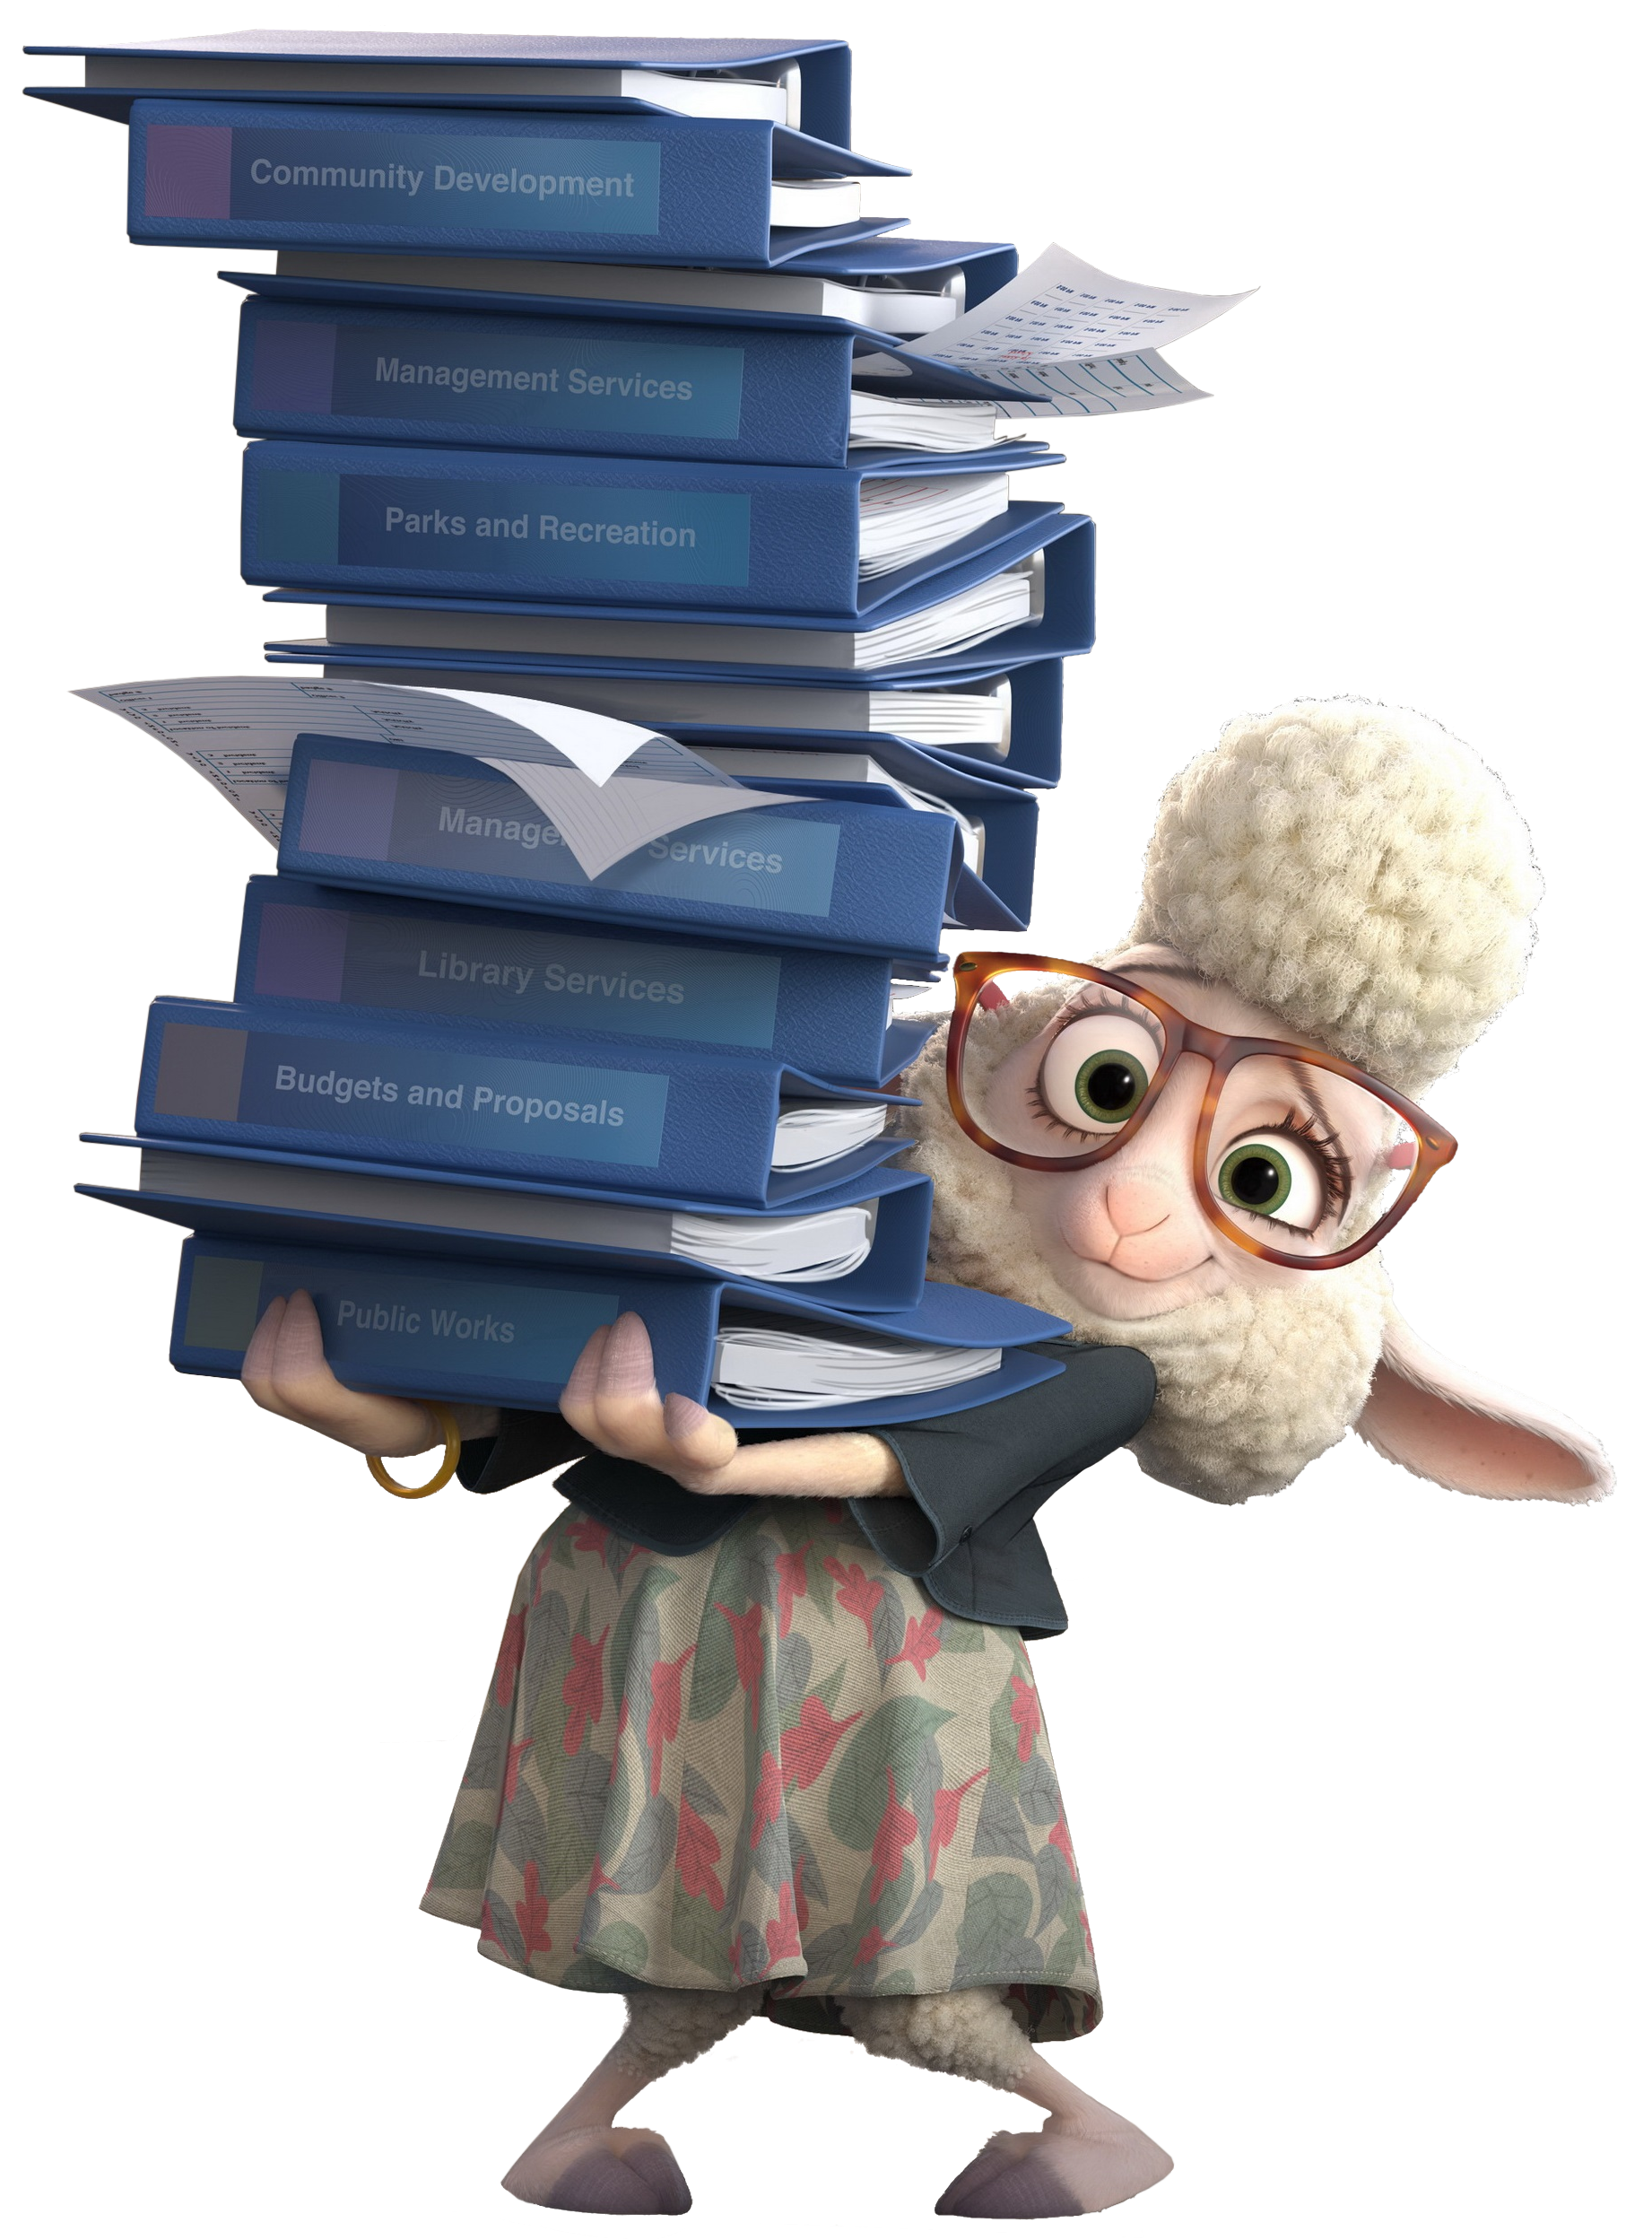 Assistant Mayor Bellwether Is The Main Antagonist Of The 2016 Disney Animated Feature Film Zootopia Bellwether Wa Zootopia Characters Disney Zootopia Zootopia